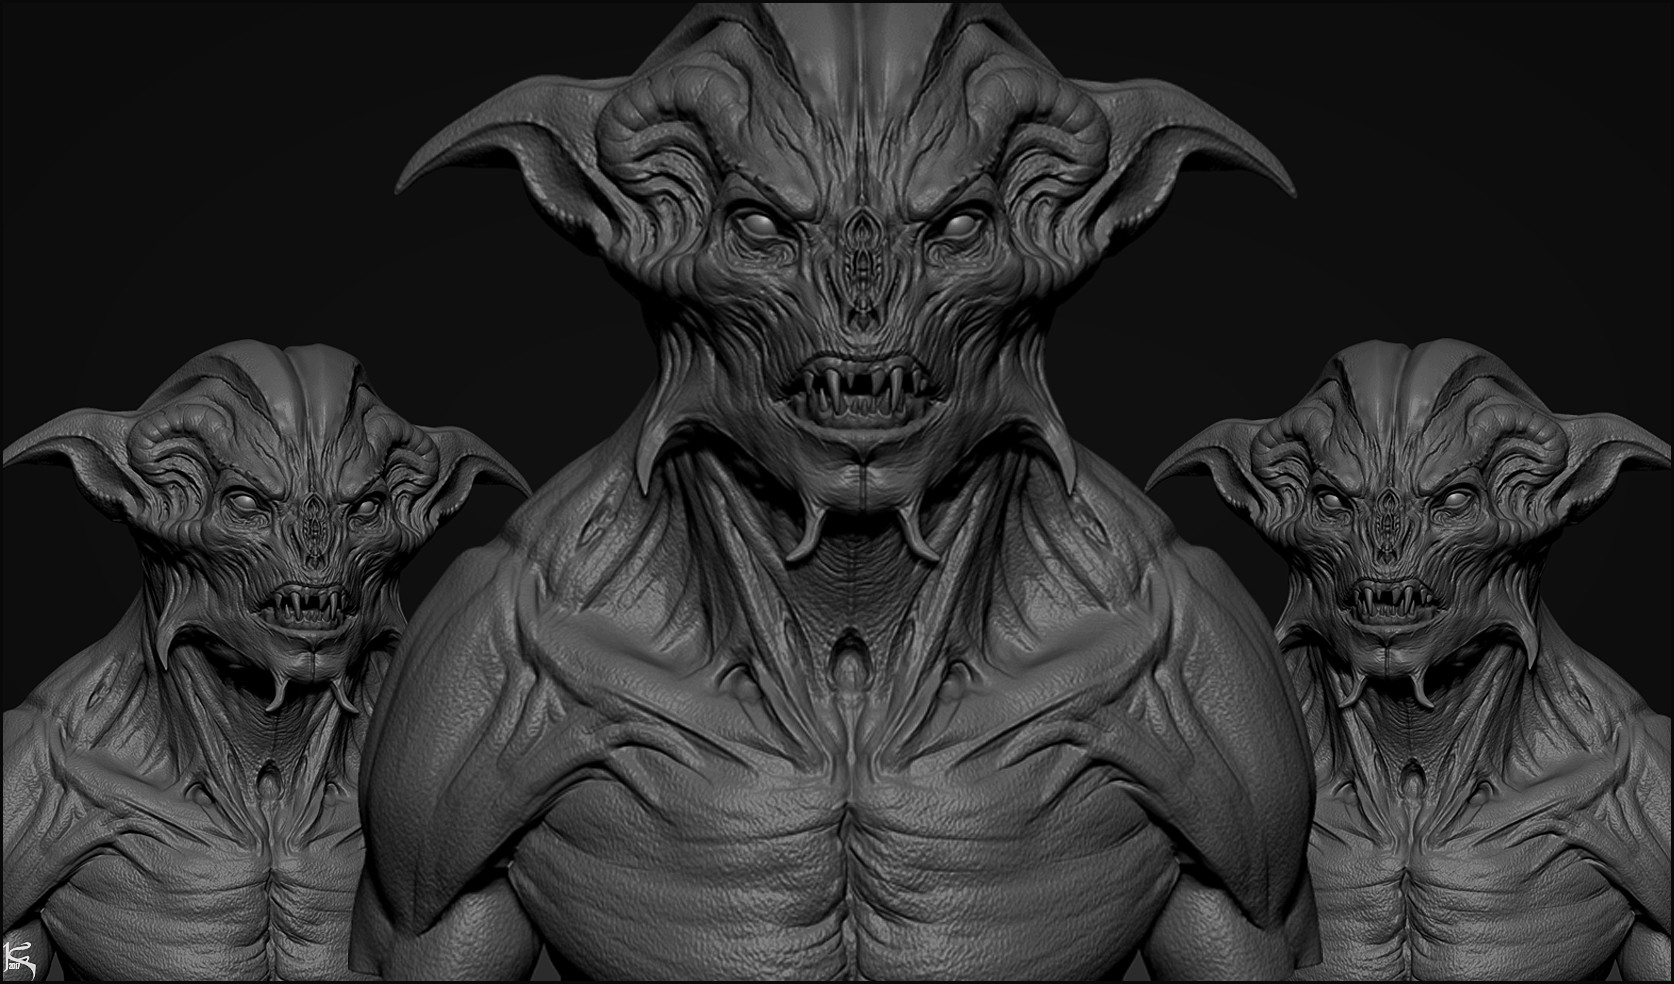 kenny-carmody-creature05-zbrush-screengrab.jpg